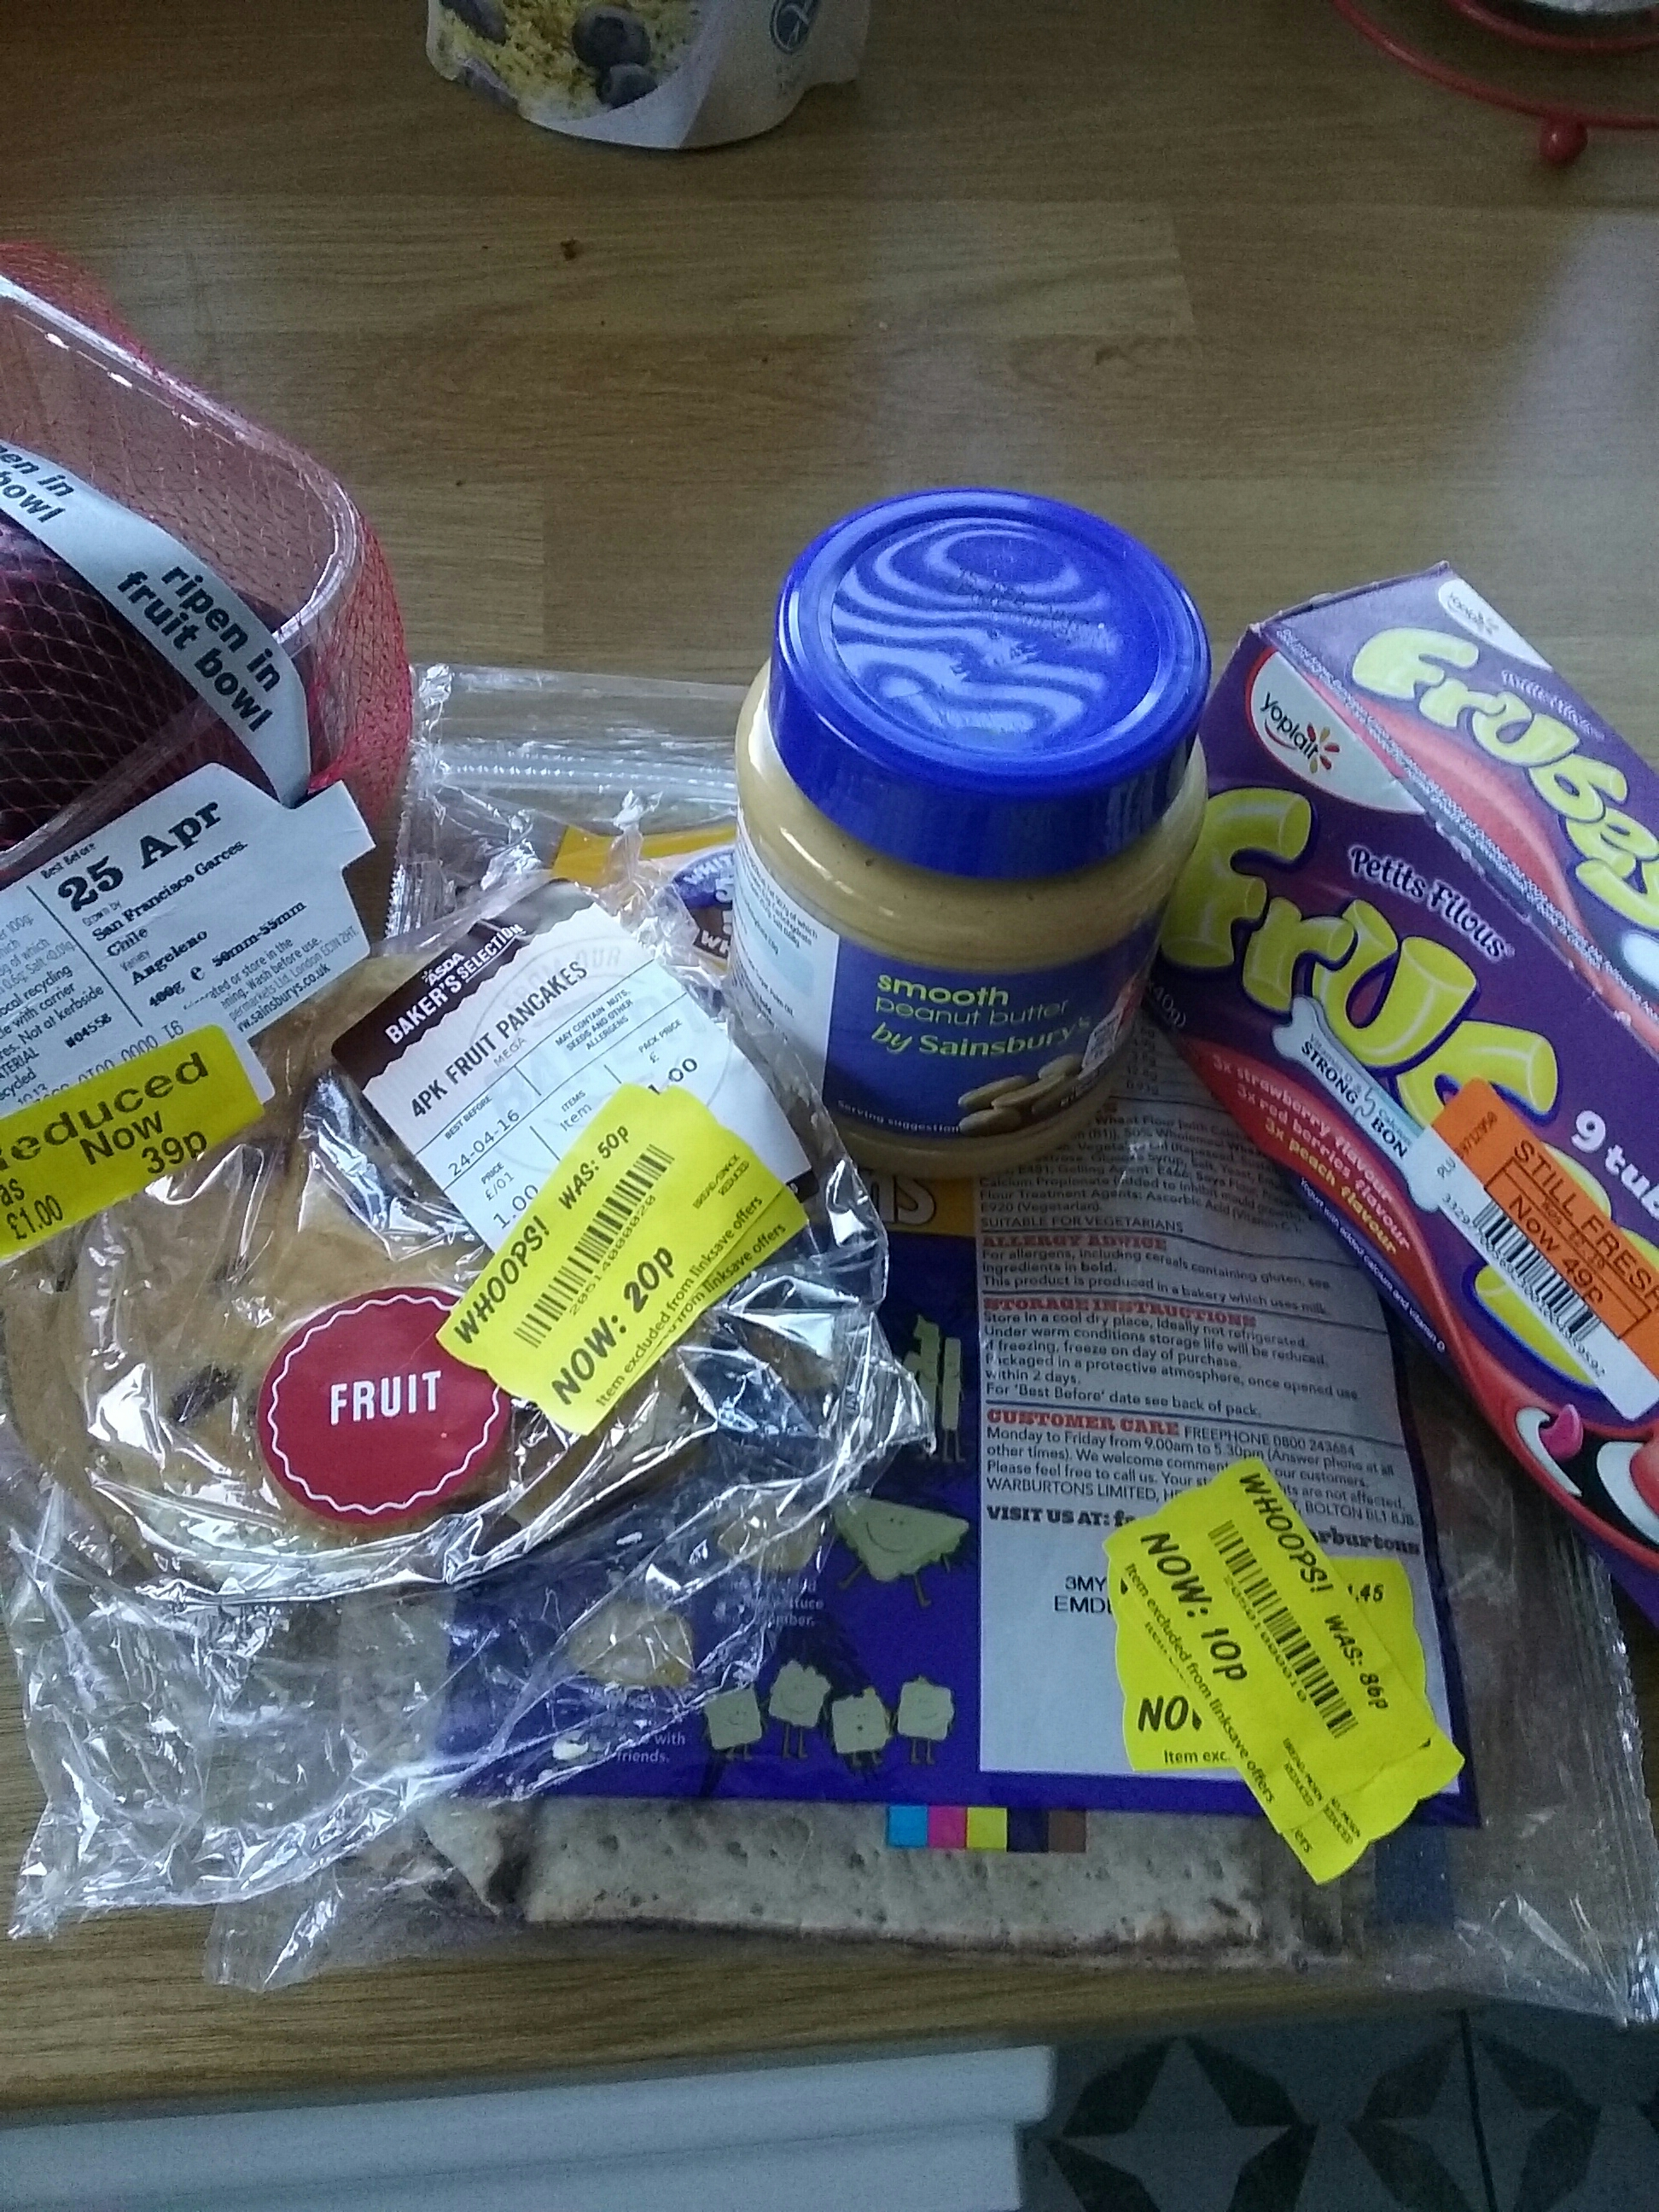 picture of peanut butter, frubes with orange reduced tag, pancakes and fruit with yellow reduced tags